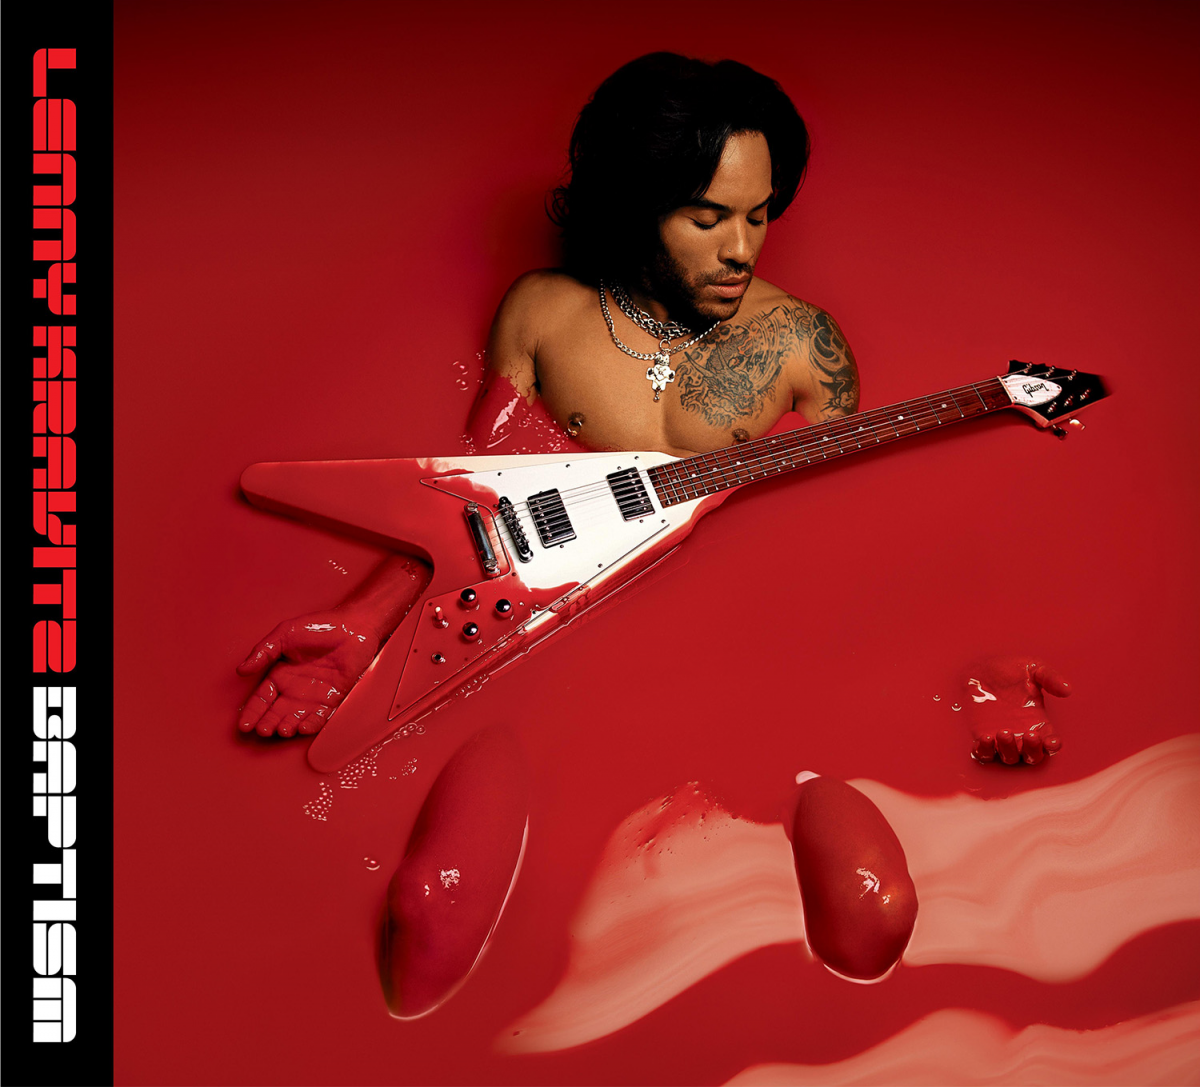 Lenny Kravitz (Cantante, actor, compositor, multiinstrumentista y productor)